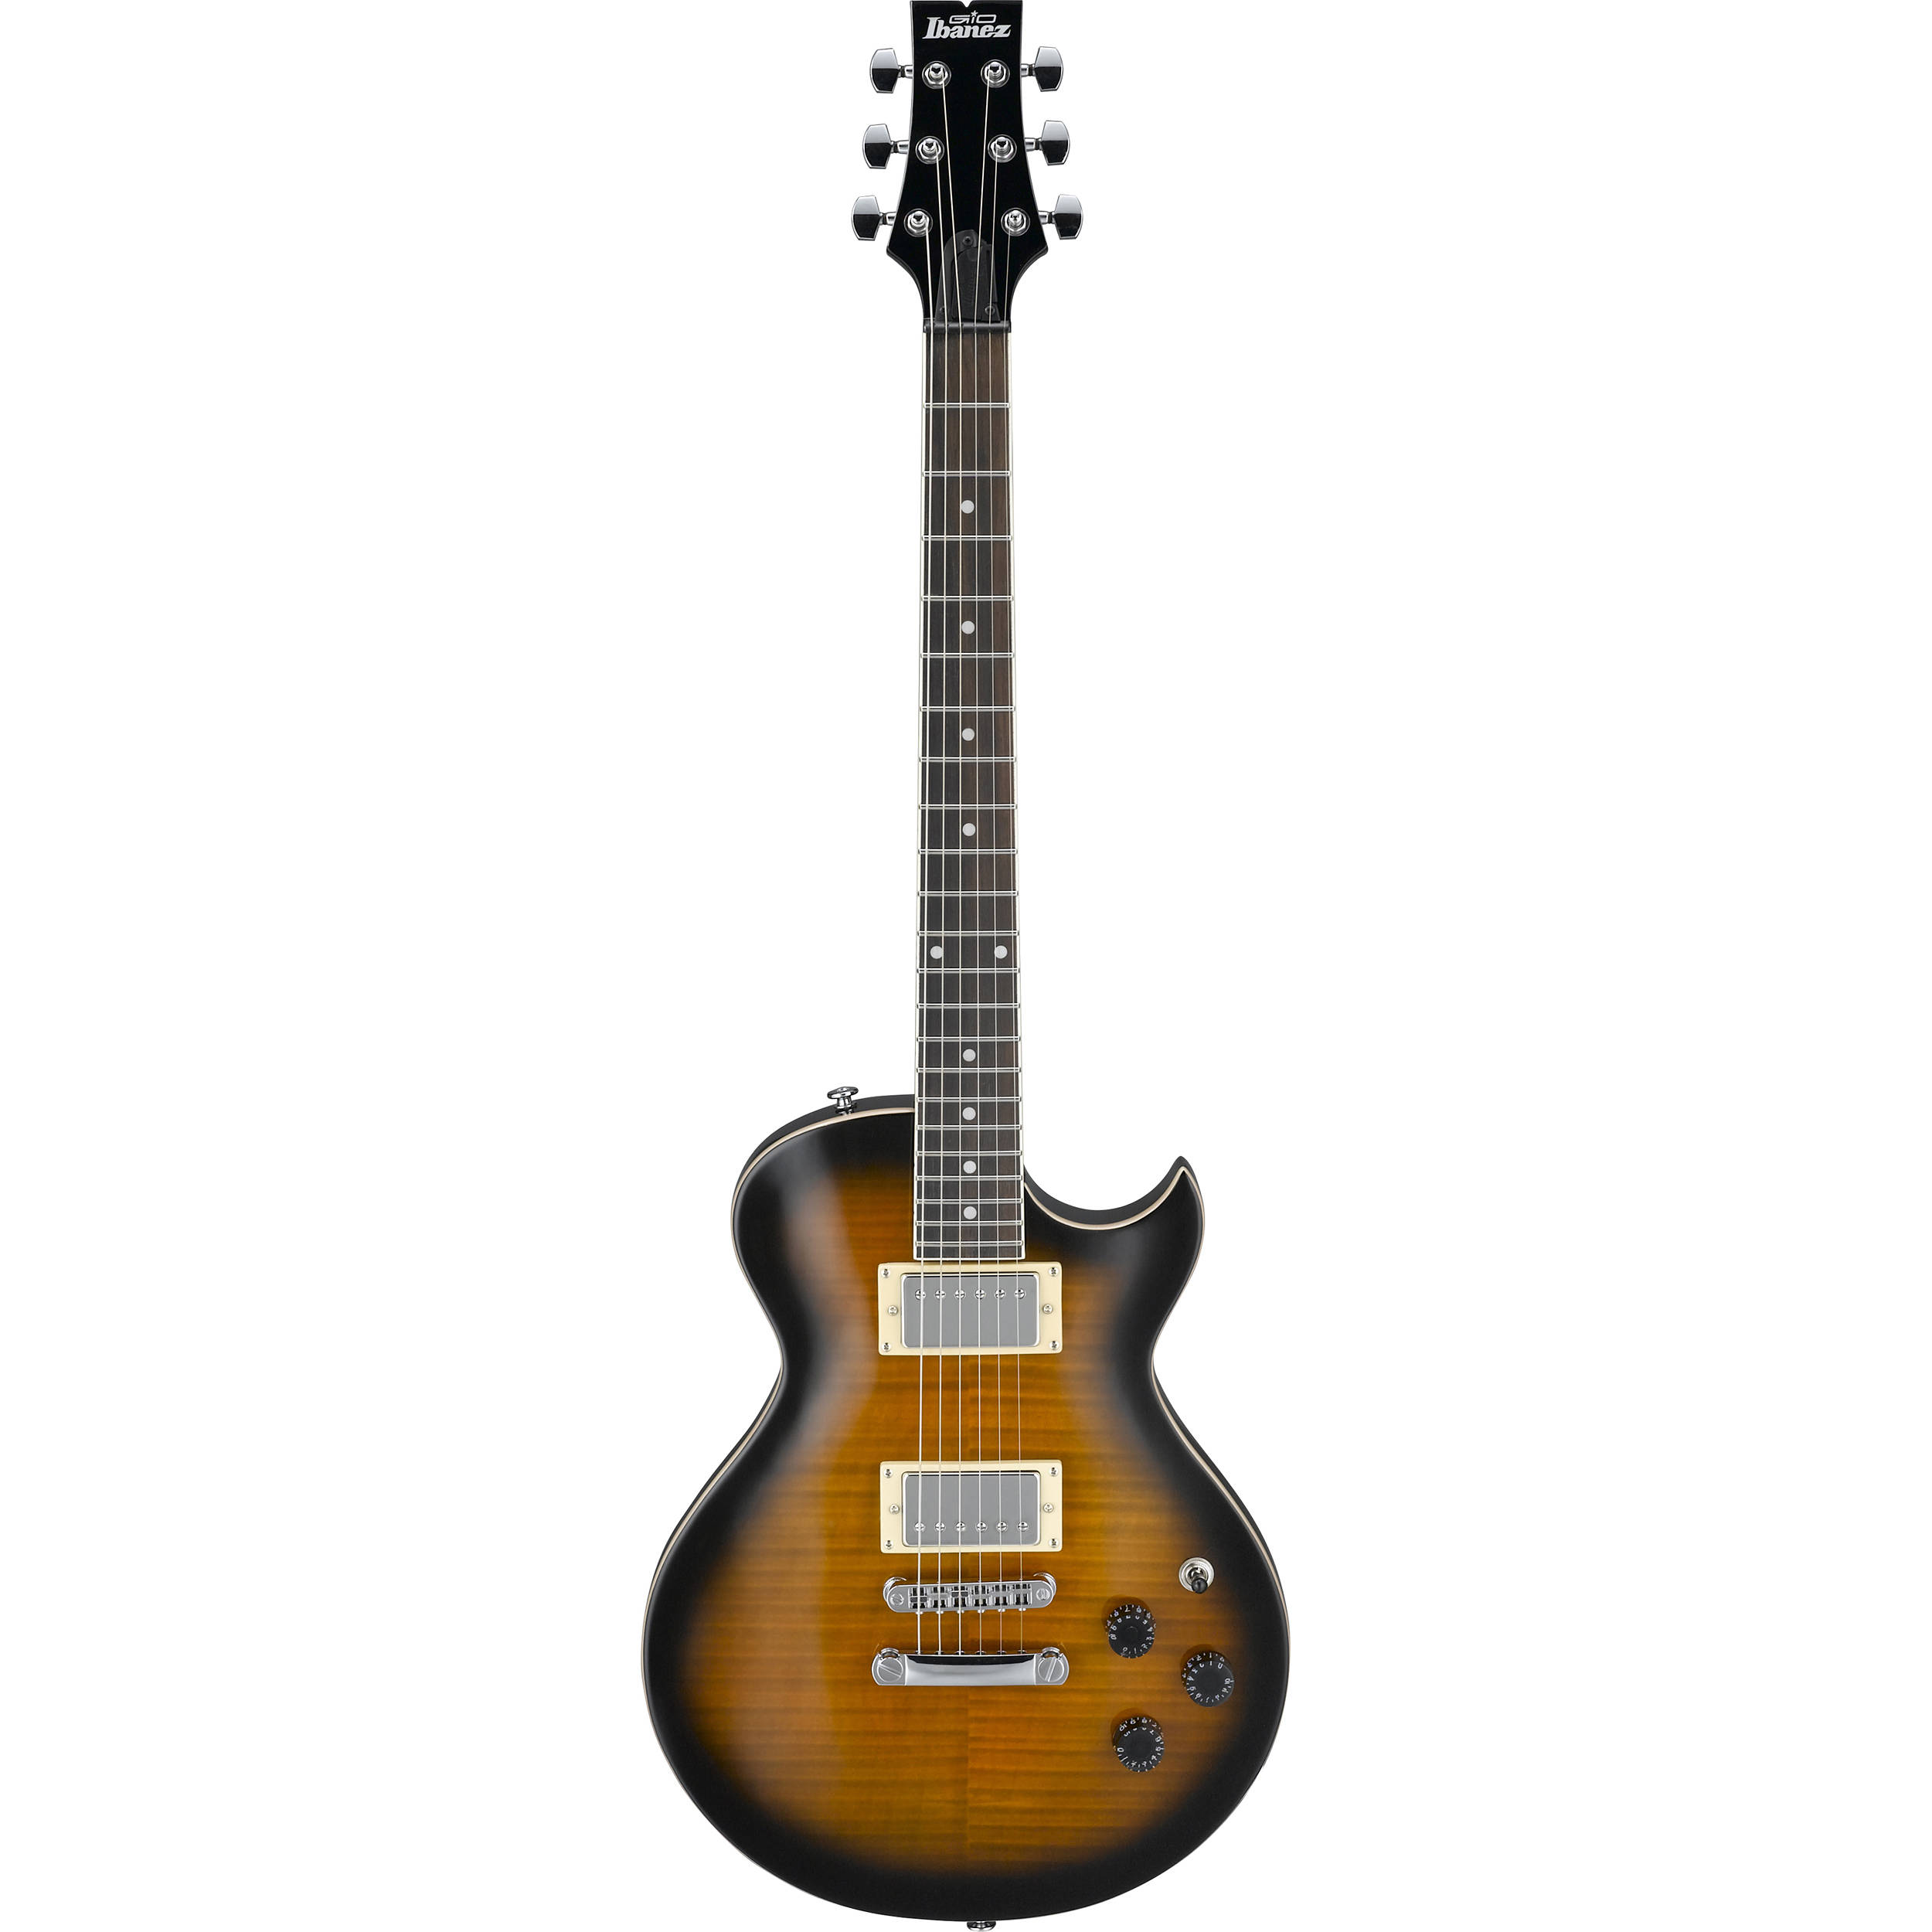 ibanez gart60fa gio series electric guitar sunburst gart60fasb. Black Bedroom Furniture Sets. Home Design Ideas